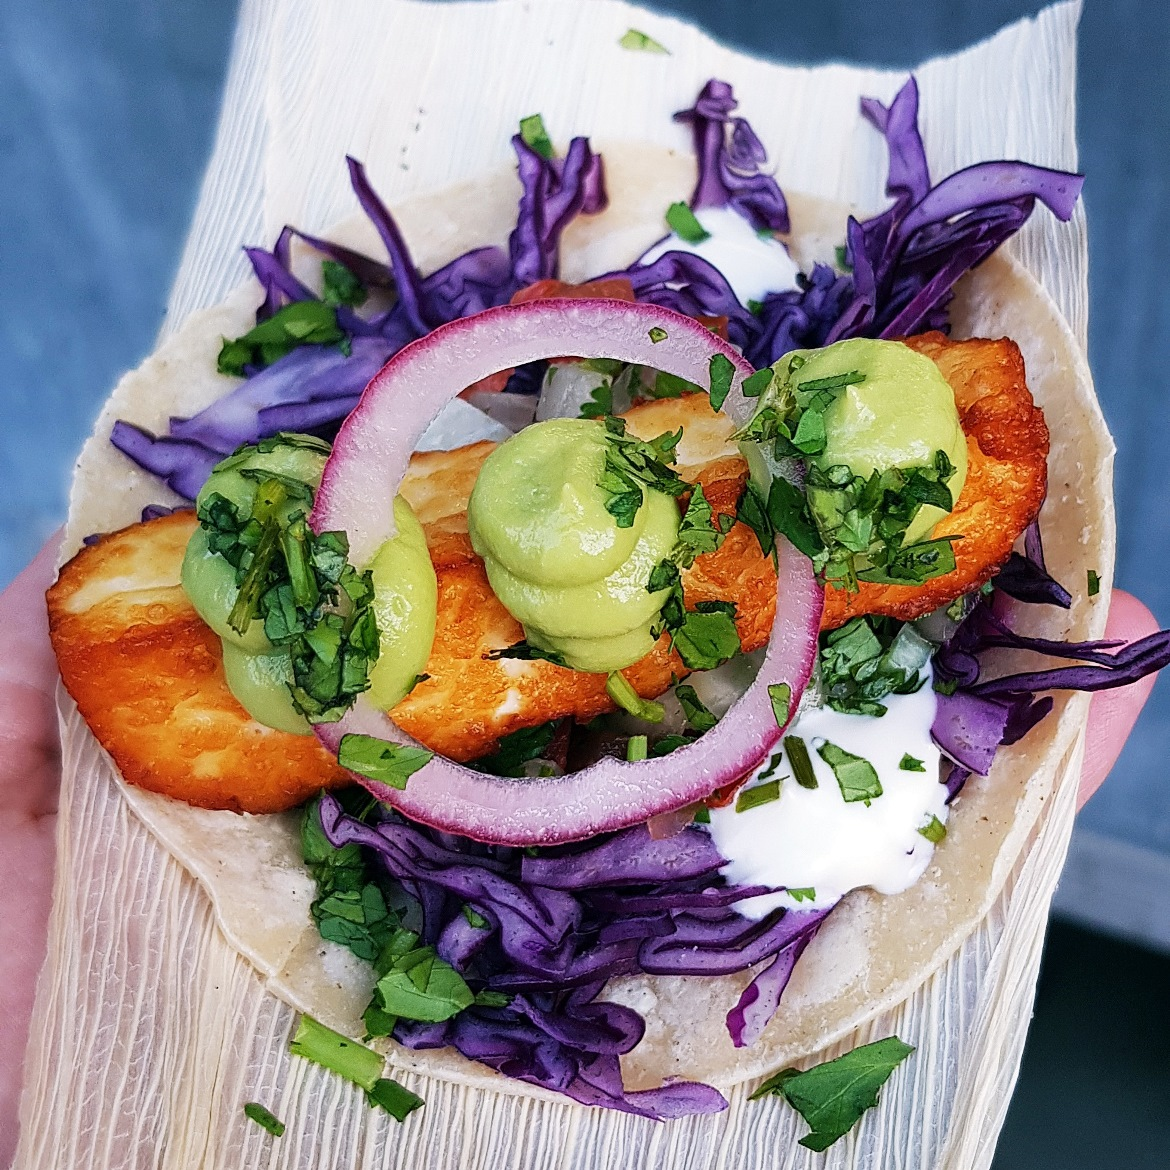 Halloumi taco at Leeds Food and Drink Festival - June 2018 Monthly Recap by BeckyBecky Blogs